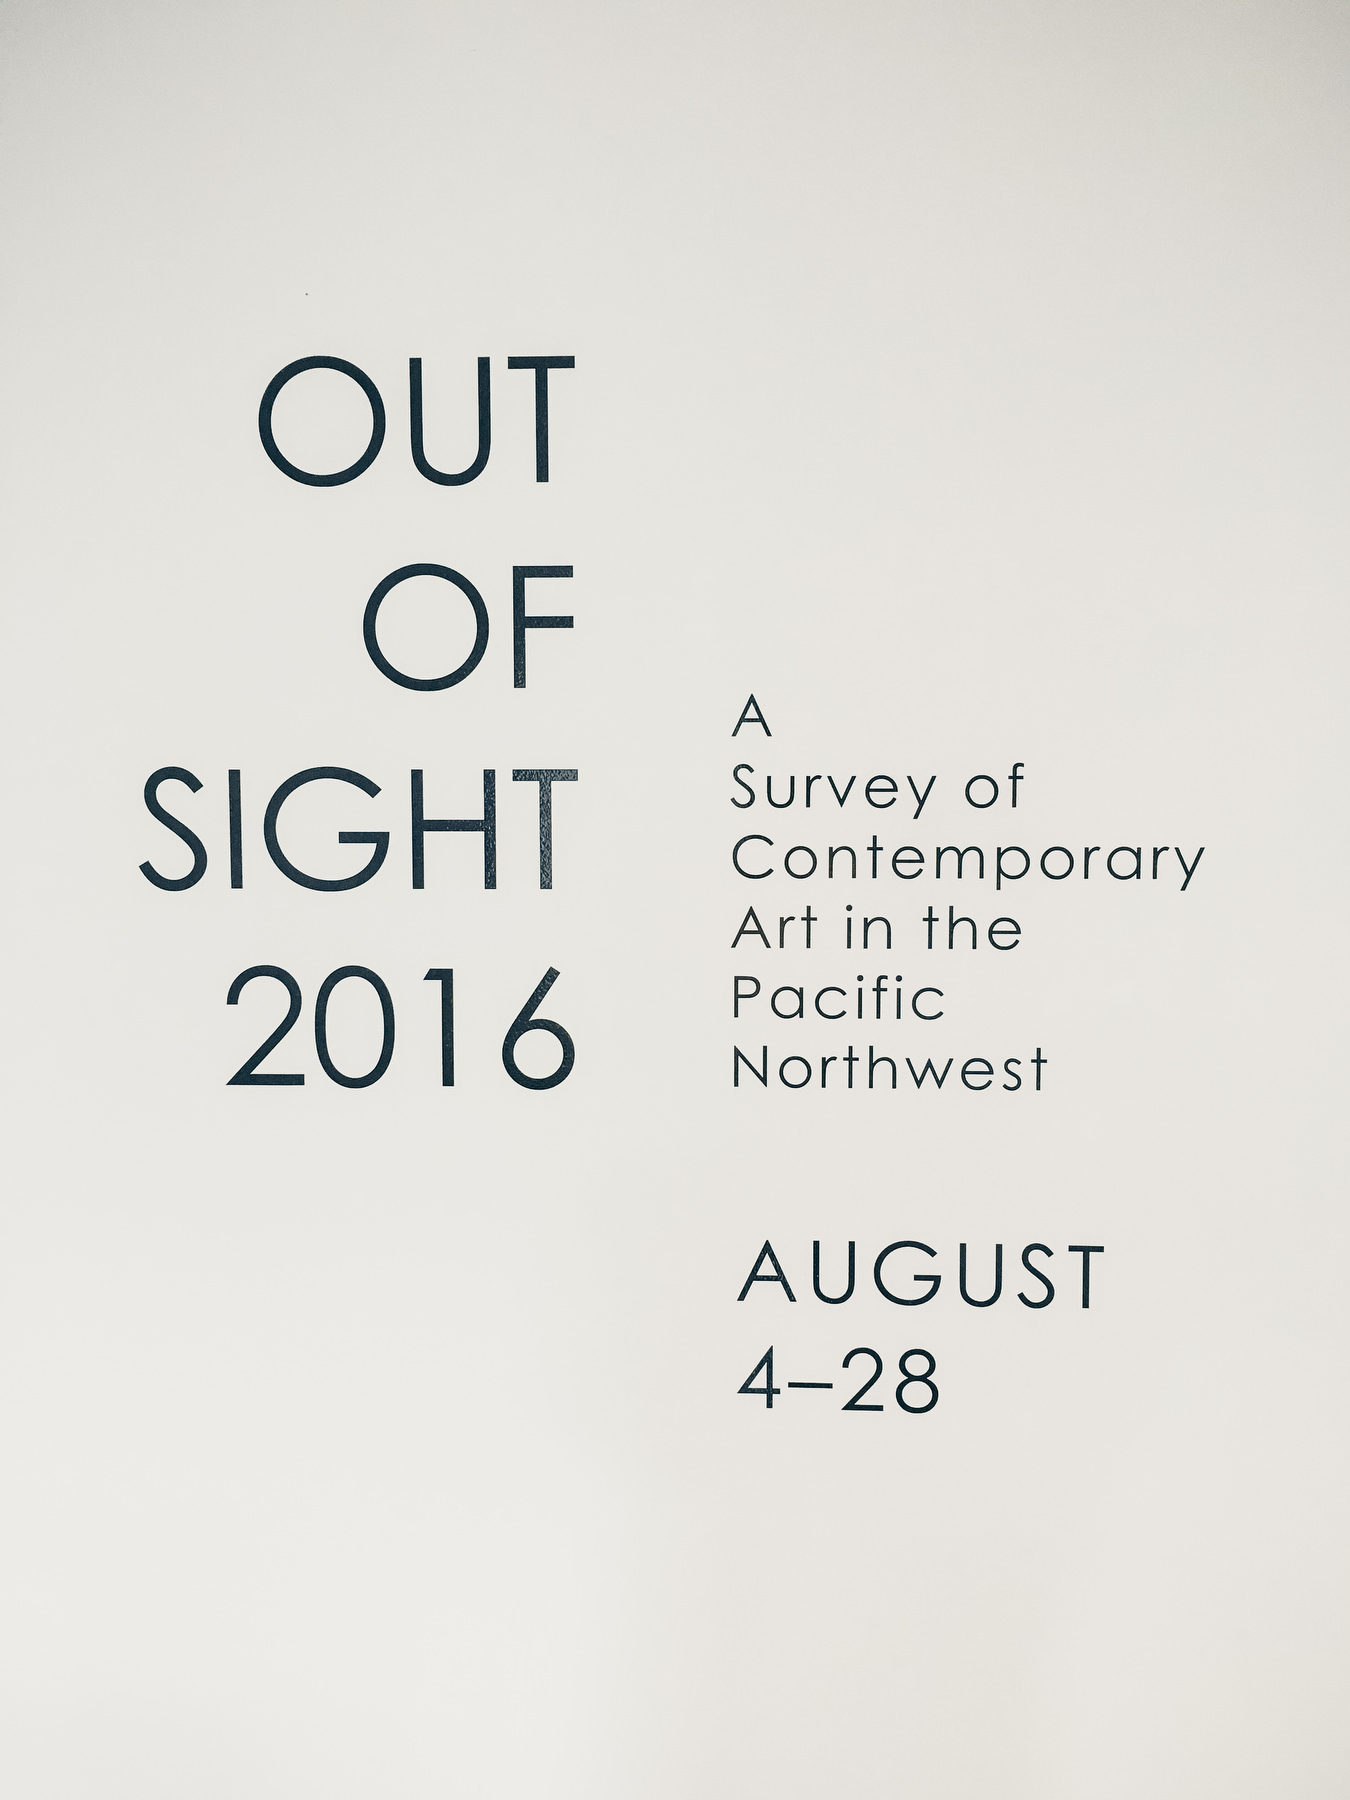 Out Of Sight 2016 gallery signage